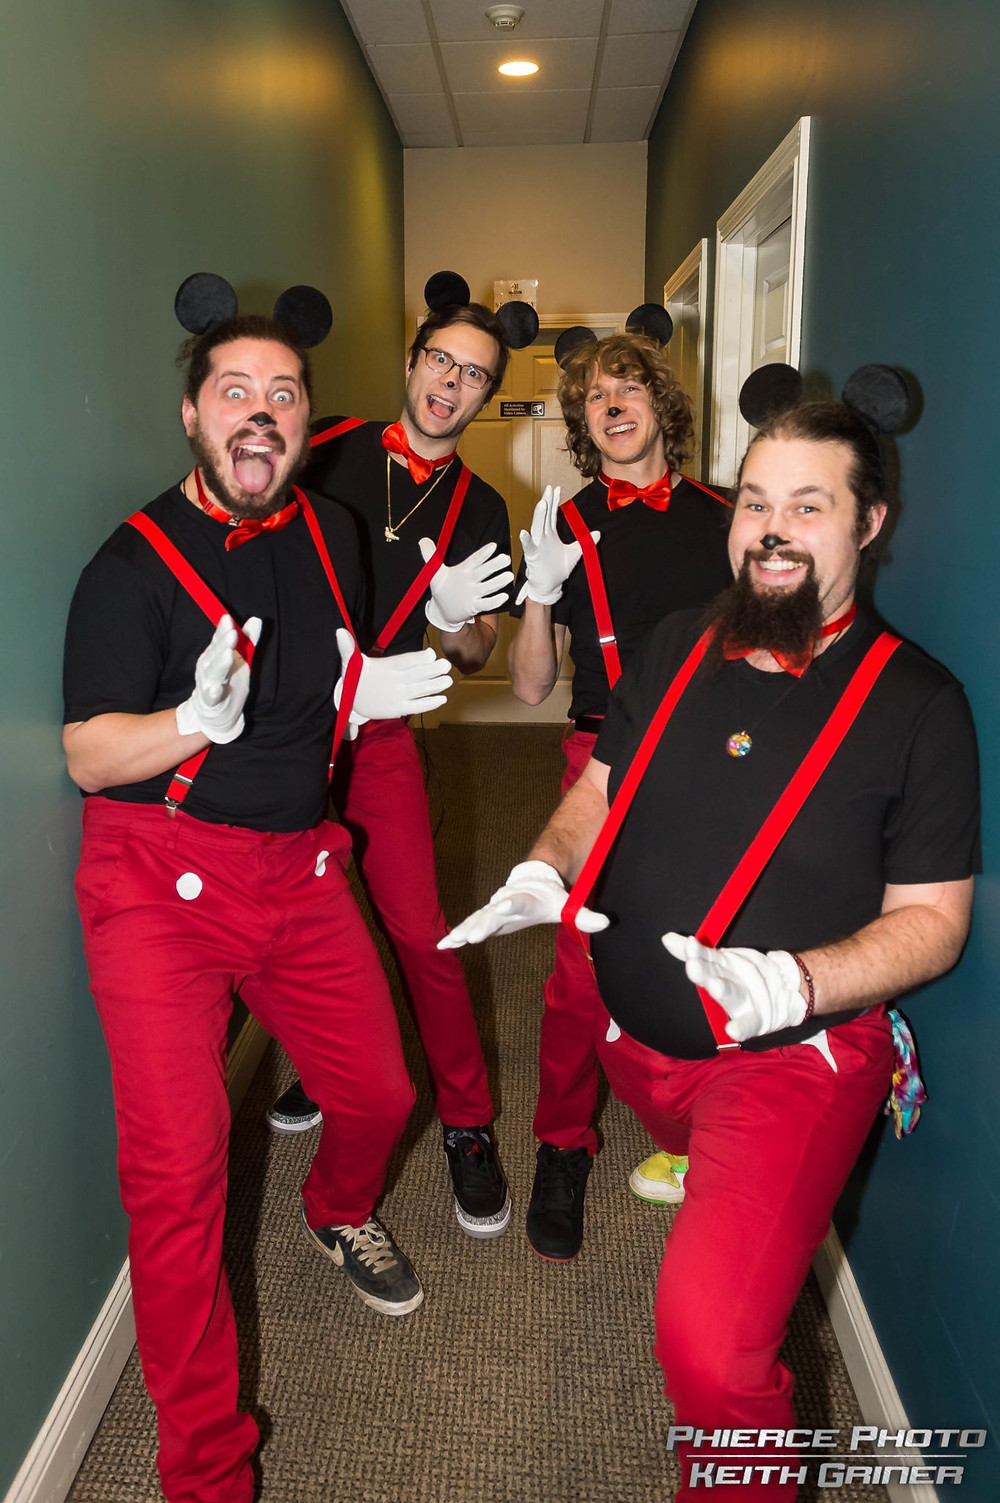 The band dressed in Mickey Mouse attire